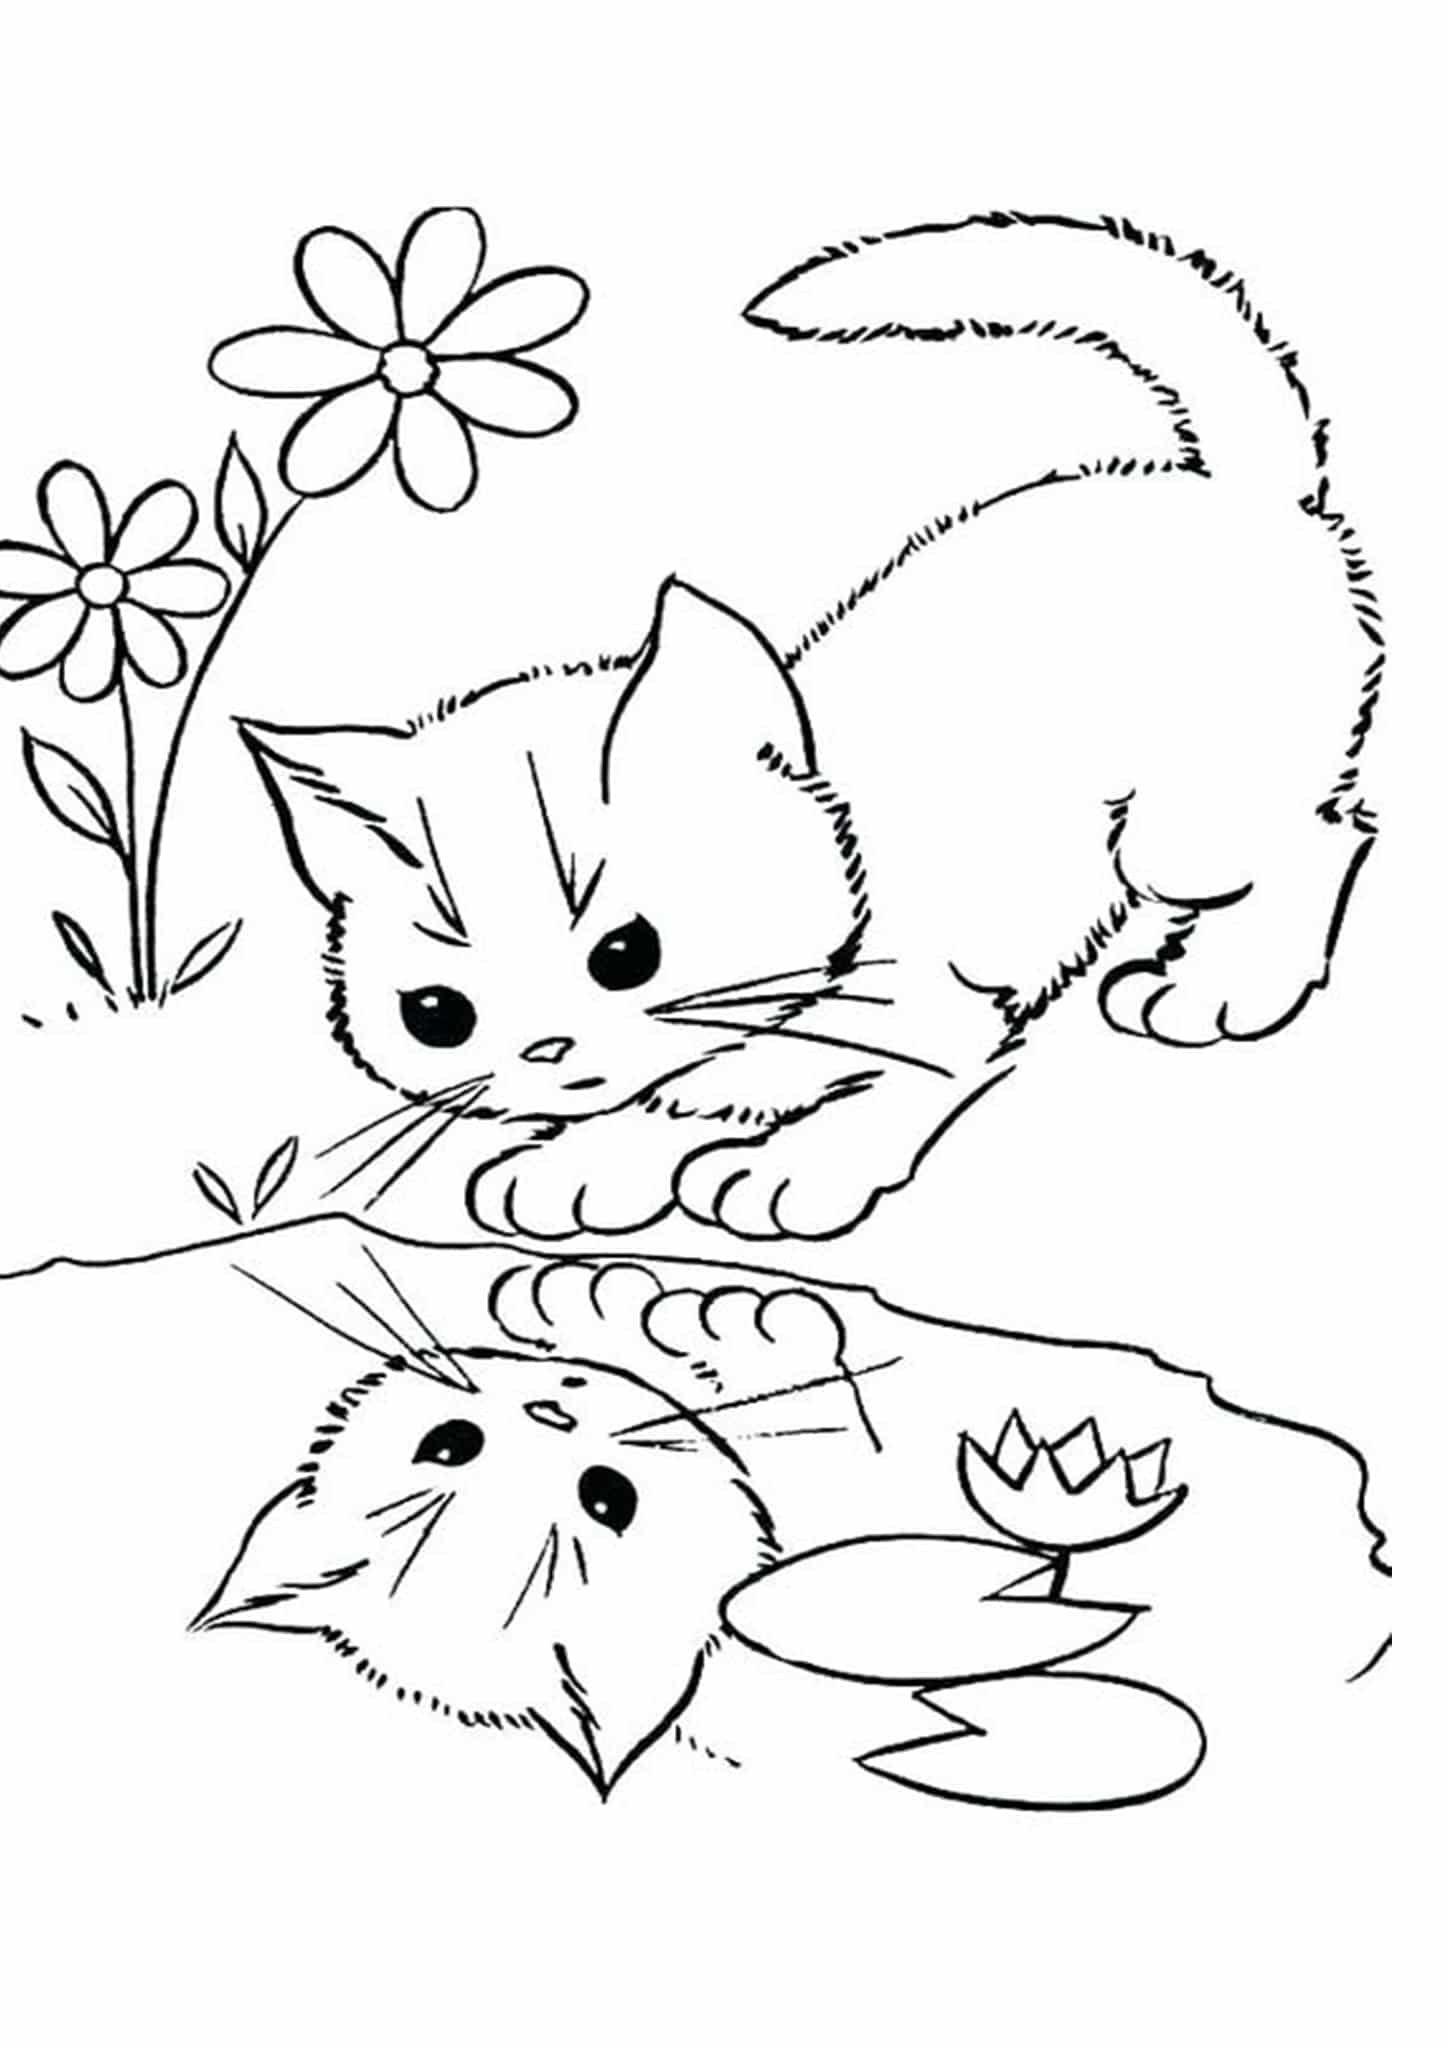 Free Easy To Print Kitten Coloring Pages In 2021 Cat Coloring Page Kittens Coloring Animal Coloring Pages